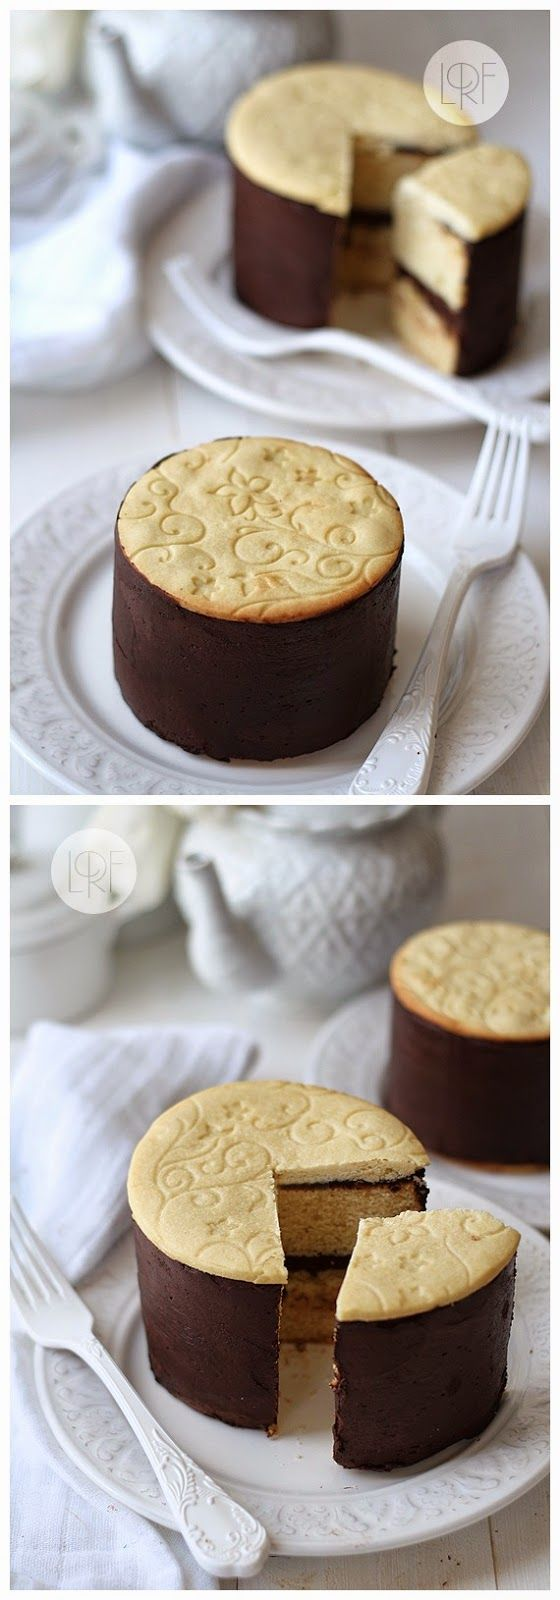 Mini Cakes Decorated with Embossed Cookies